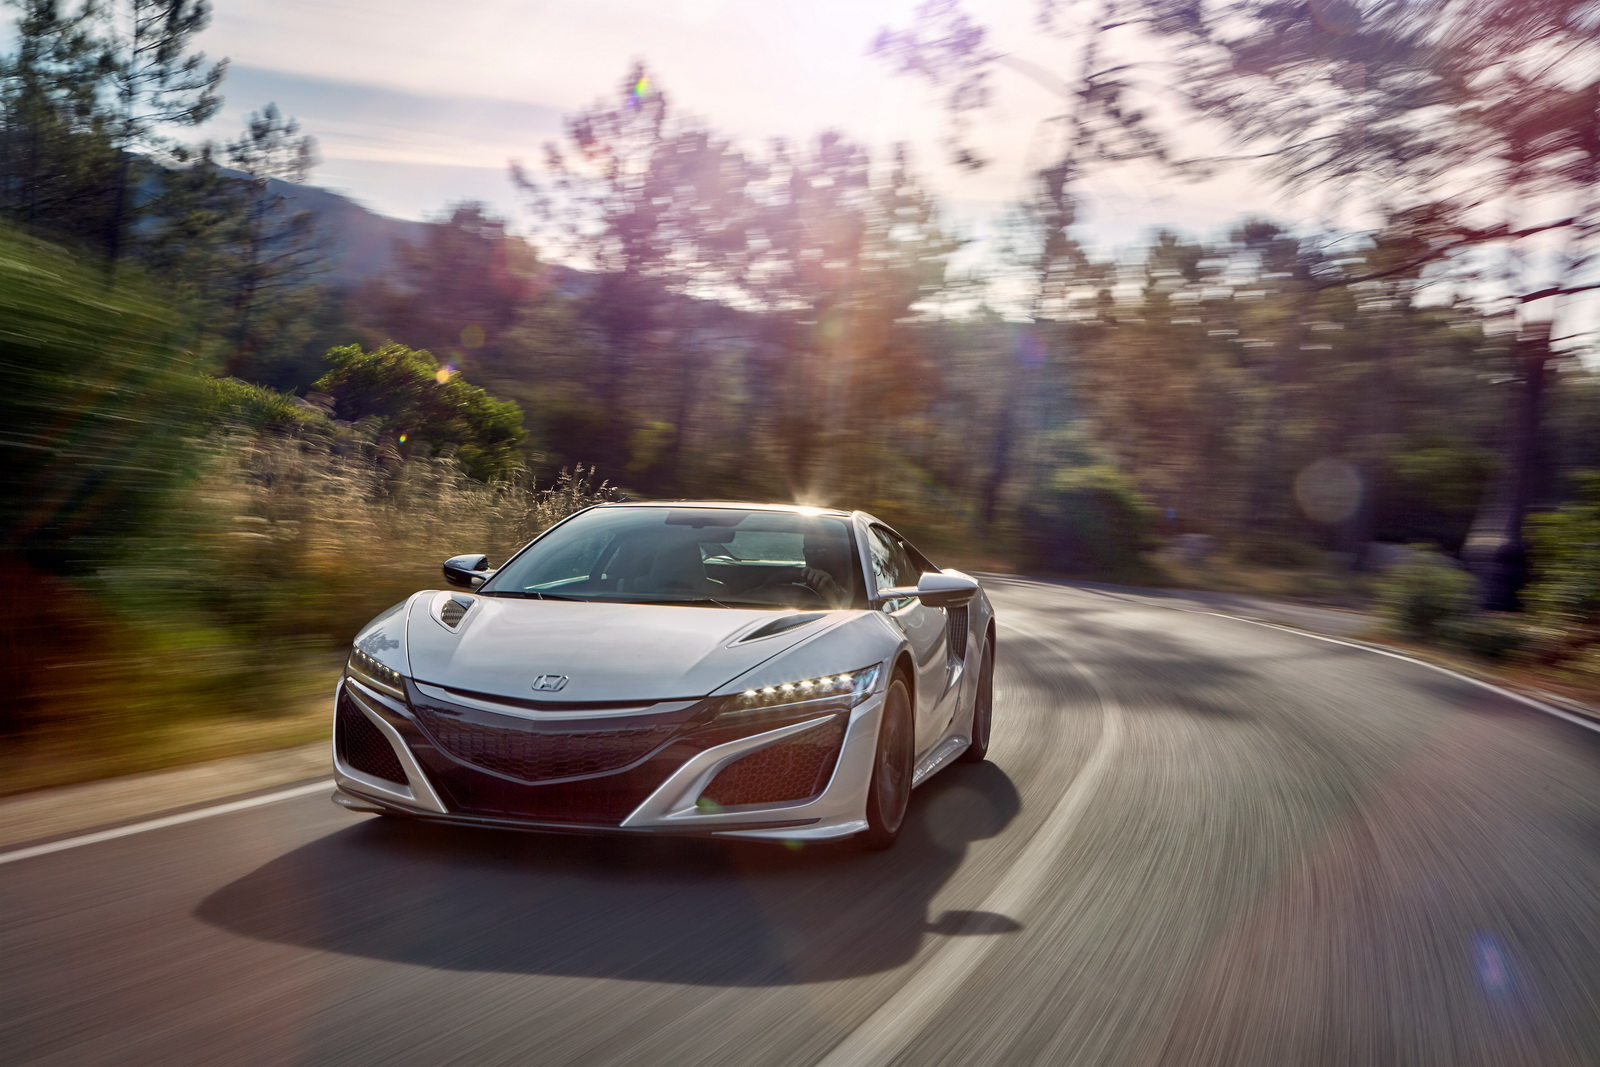 Honda NSX To Spawn More Models, Including Type-R And Pure EV